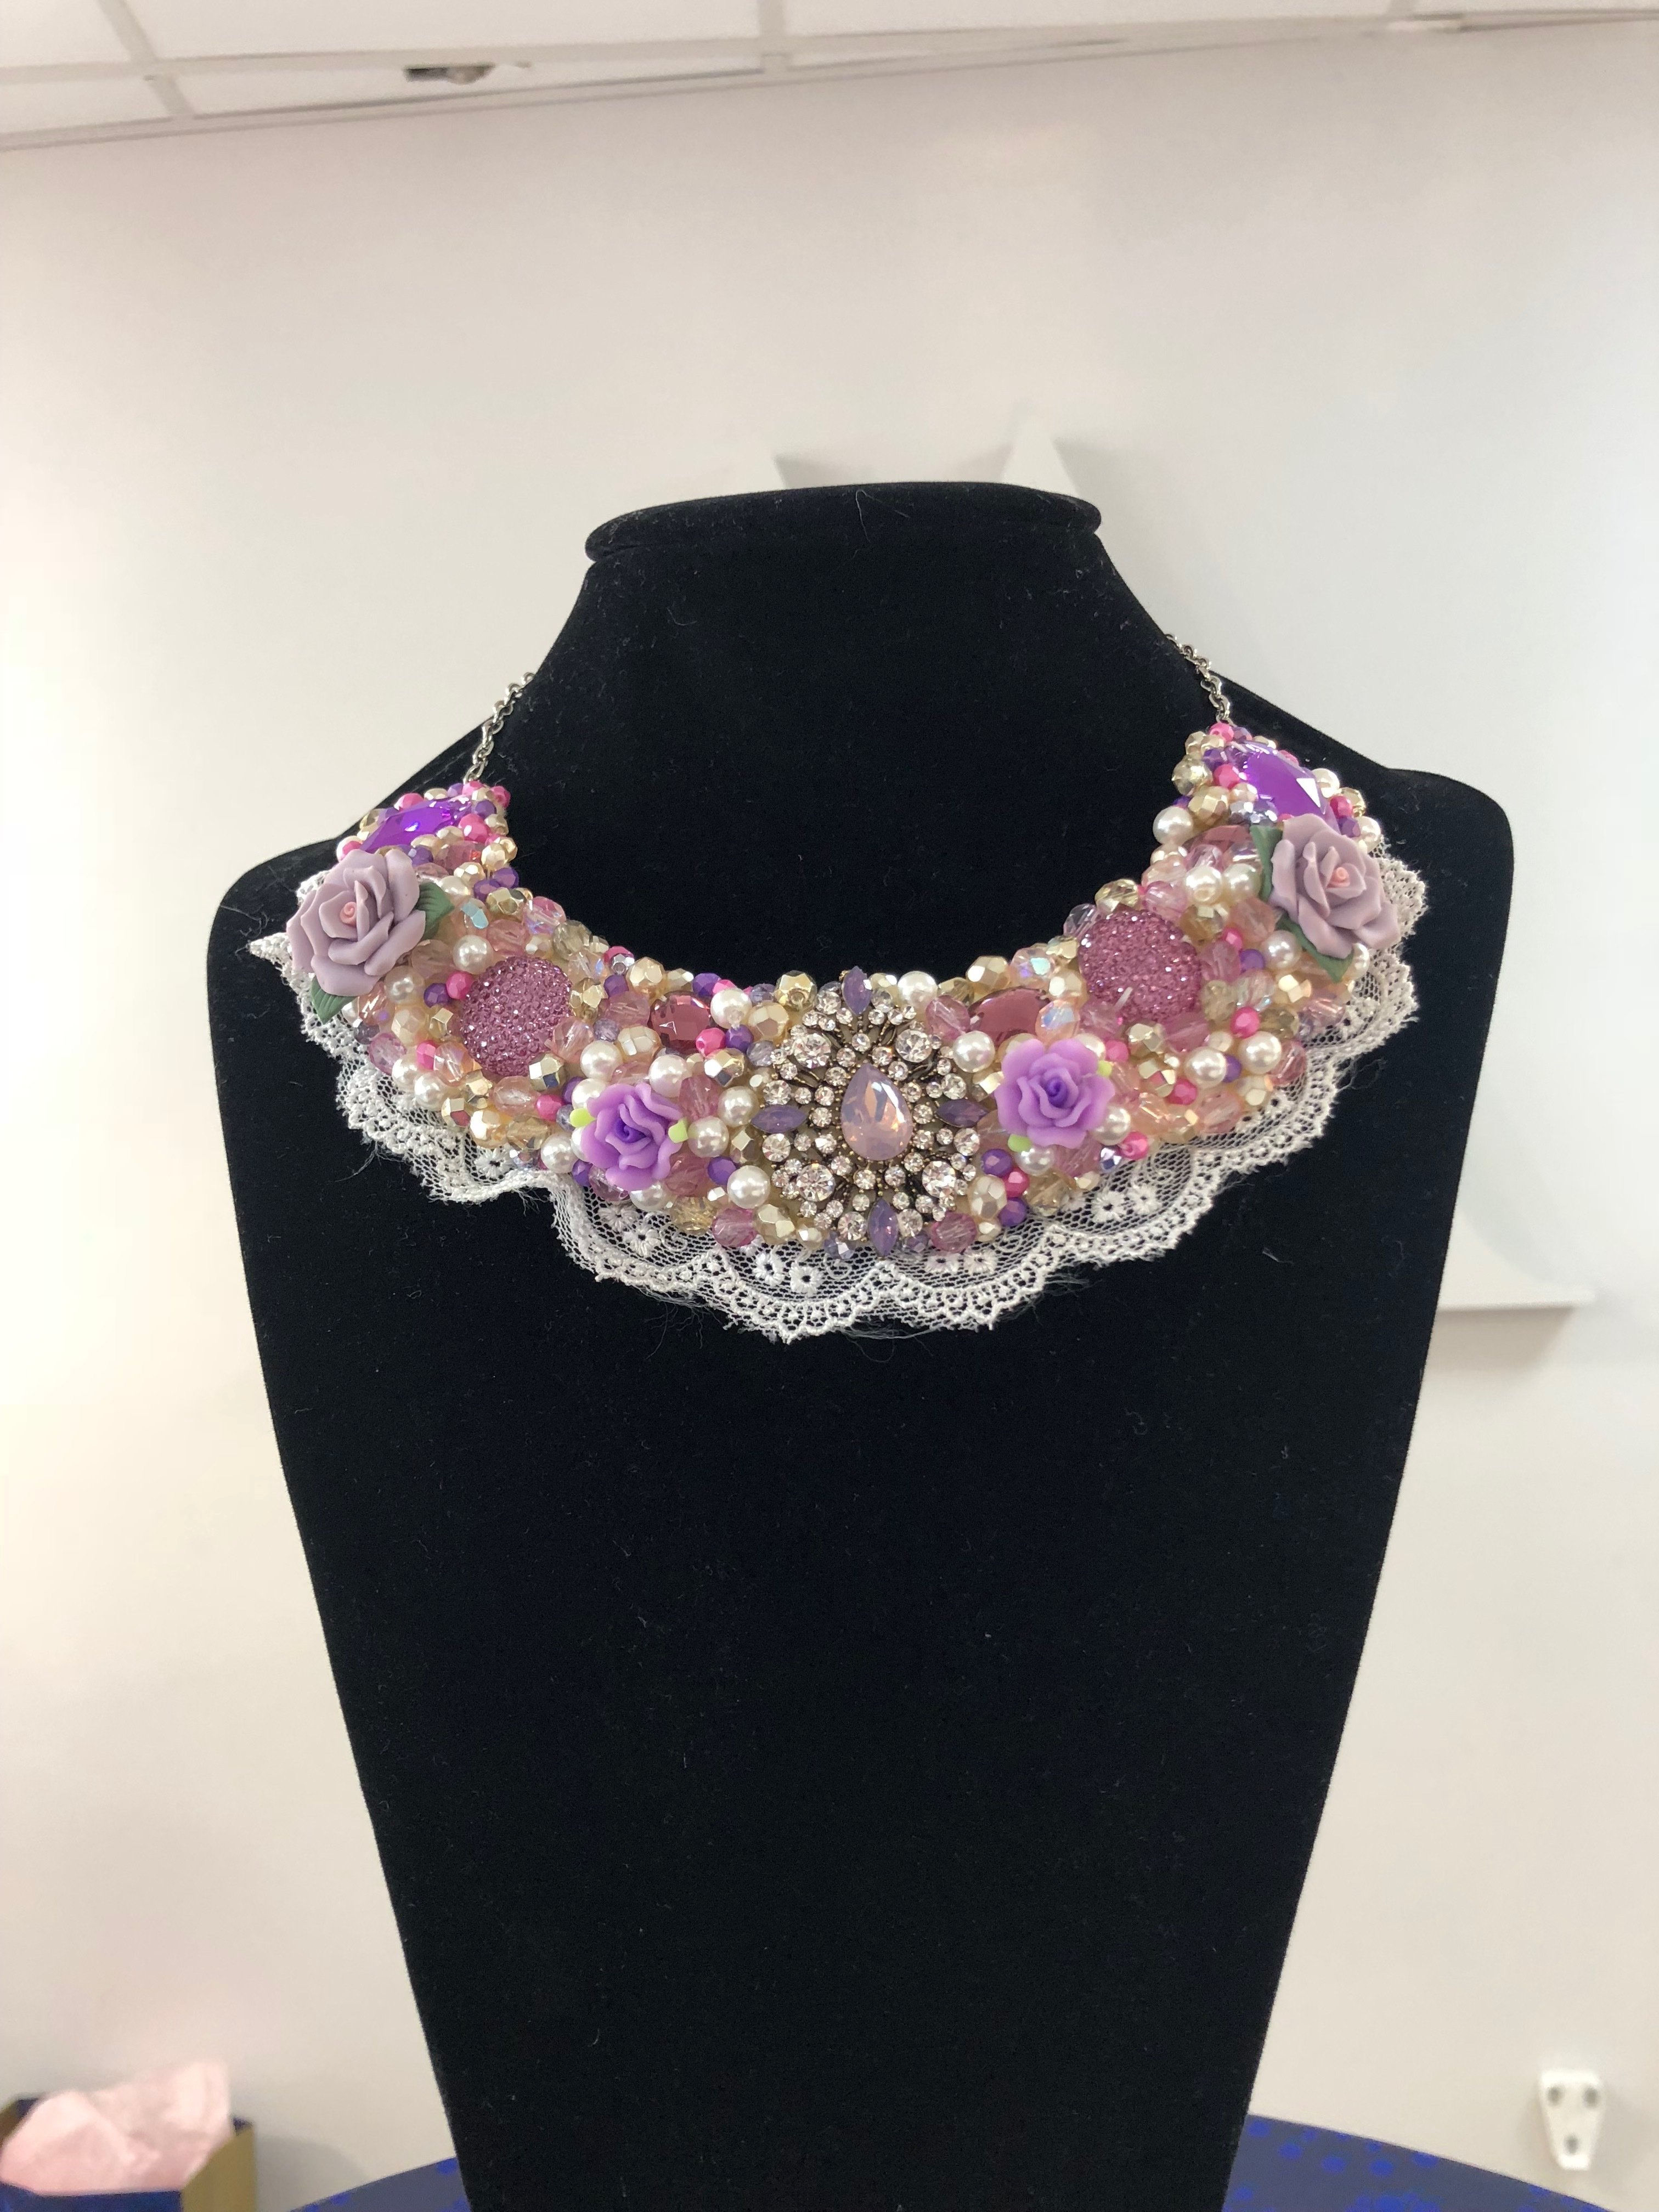 Aisling Maher Collar lilac/pijnk/pearl/gold C6PDNKNABT8SM